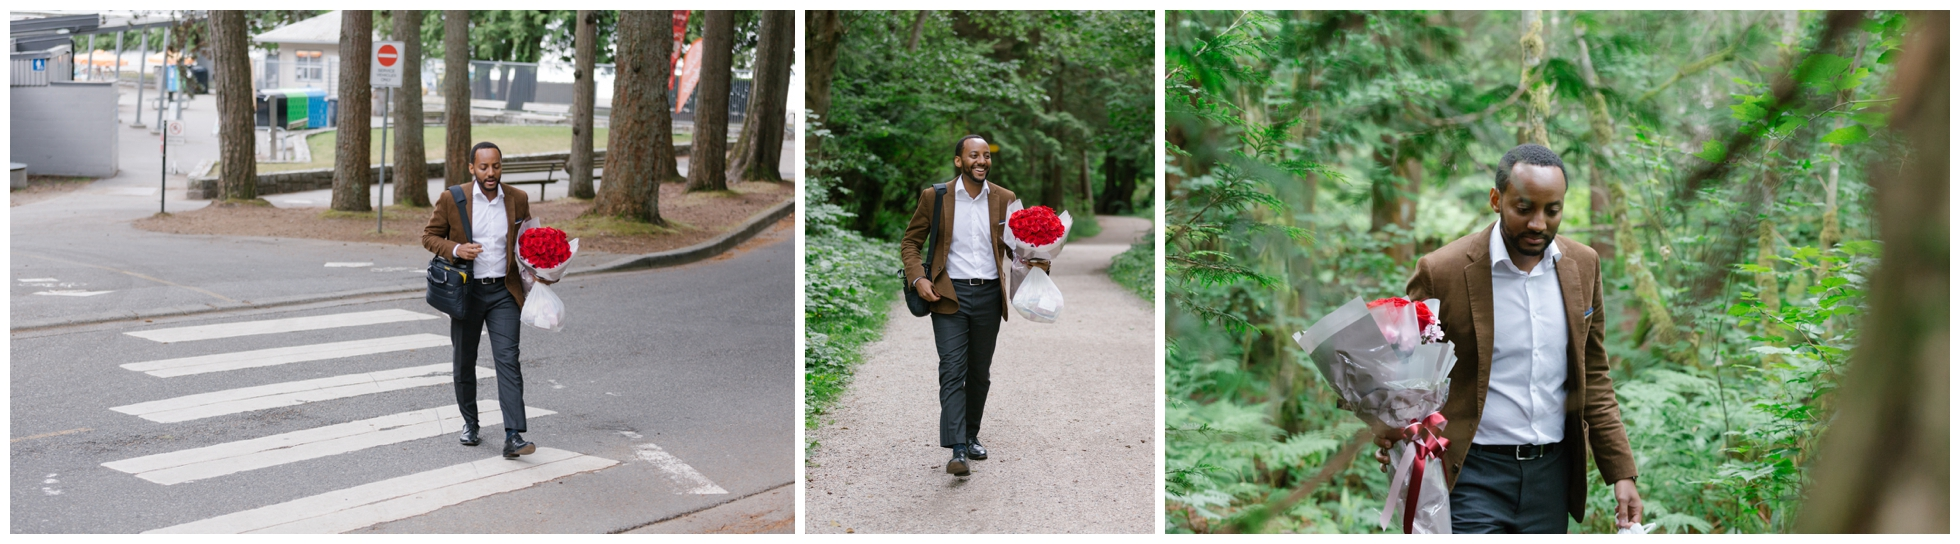 Tara and Petros Engagement Session (Life by Selena Photography)_0020.jpg